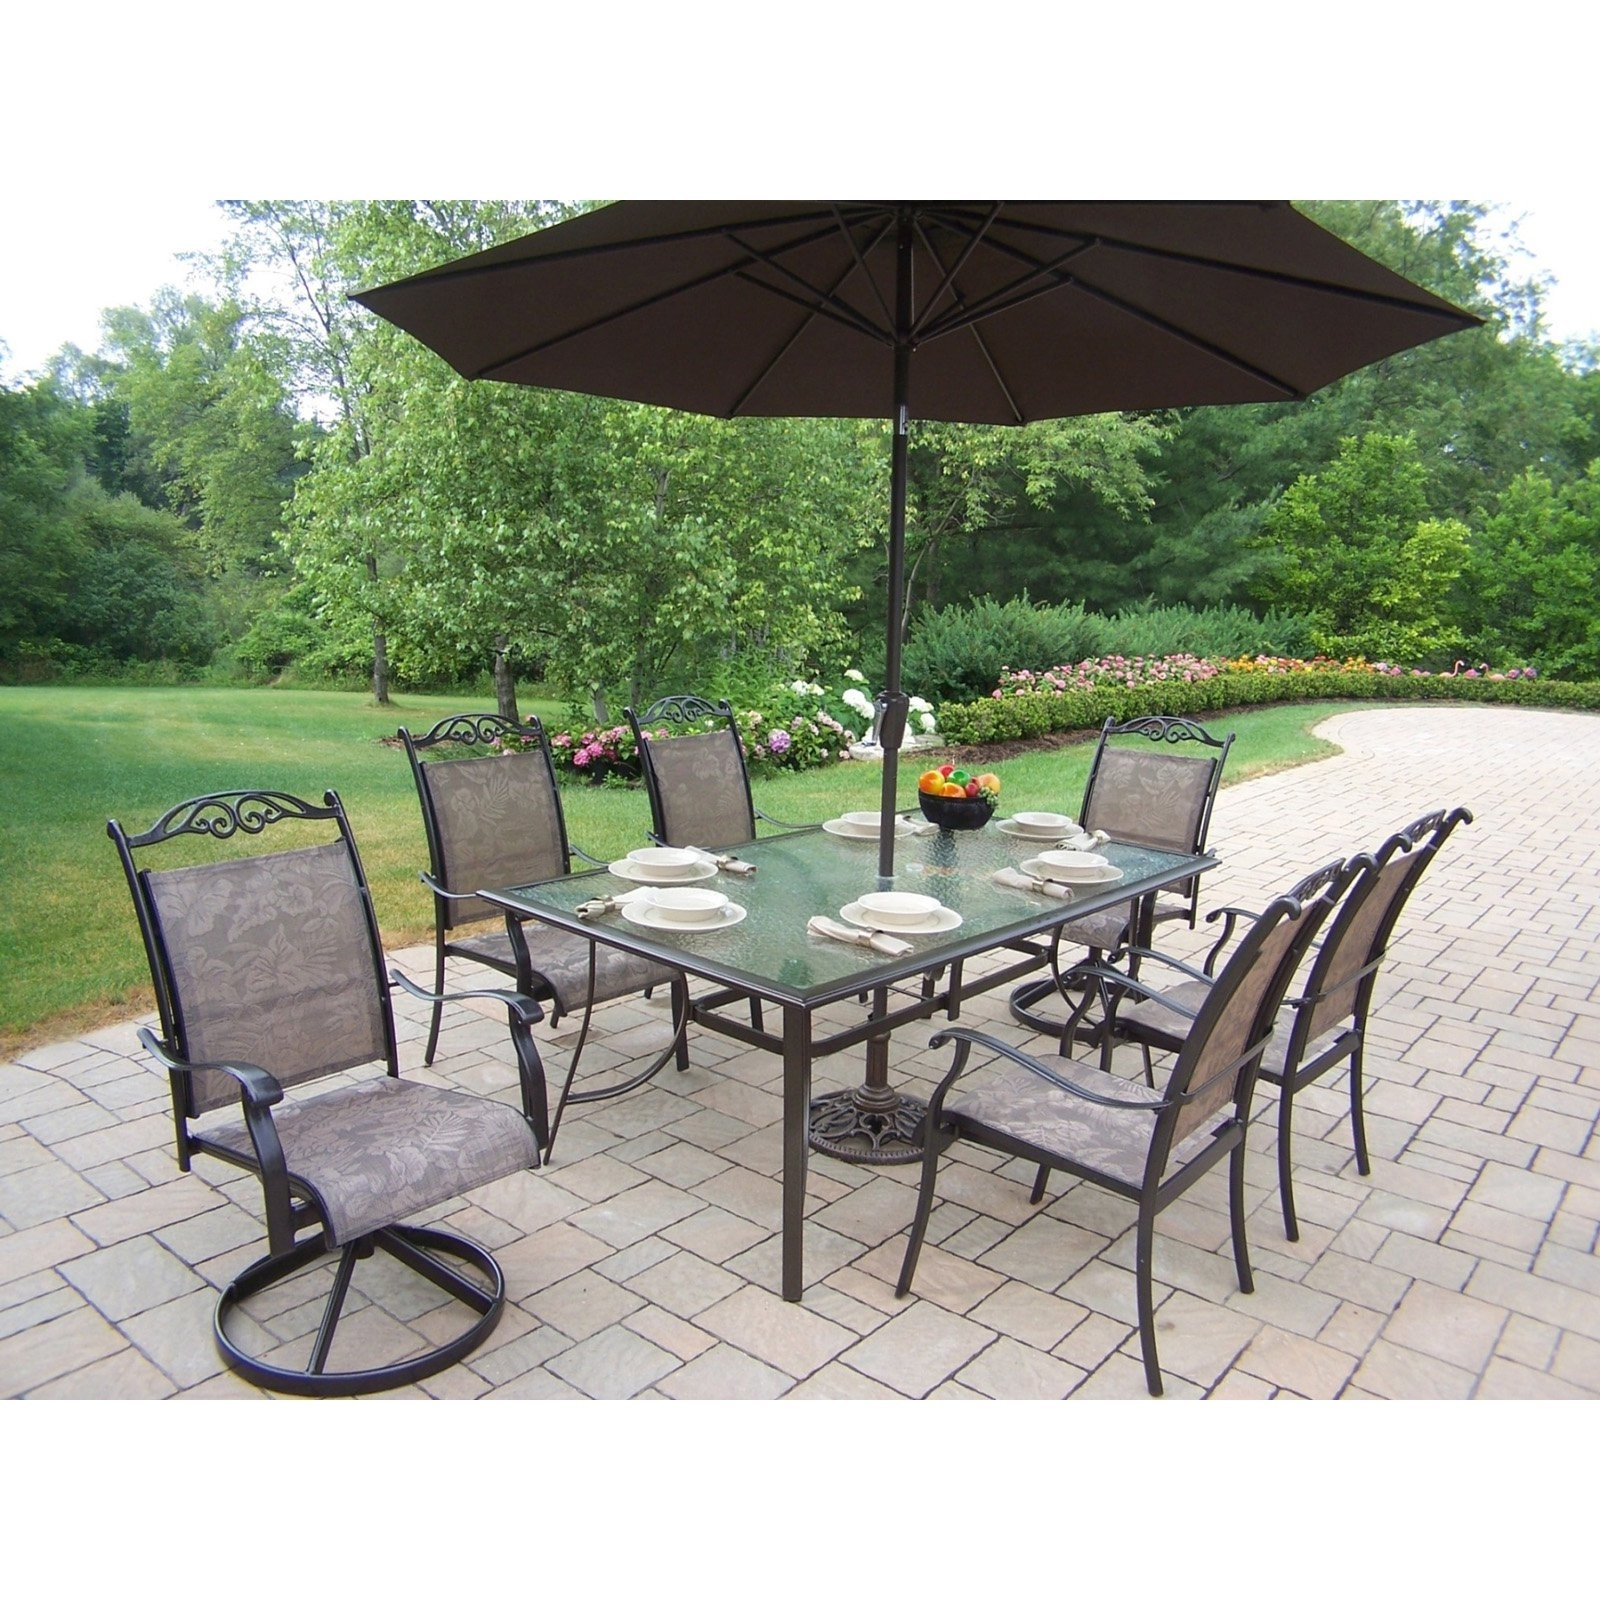 Patio Ideas Outdoor Dining Sets With Umbrella Small Piece Set Round Throughout Most Recent Patio Dining Sets With Umbrellas (View 15 of 20)